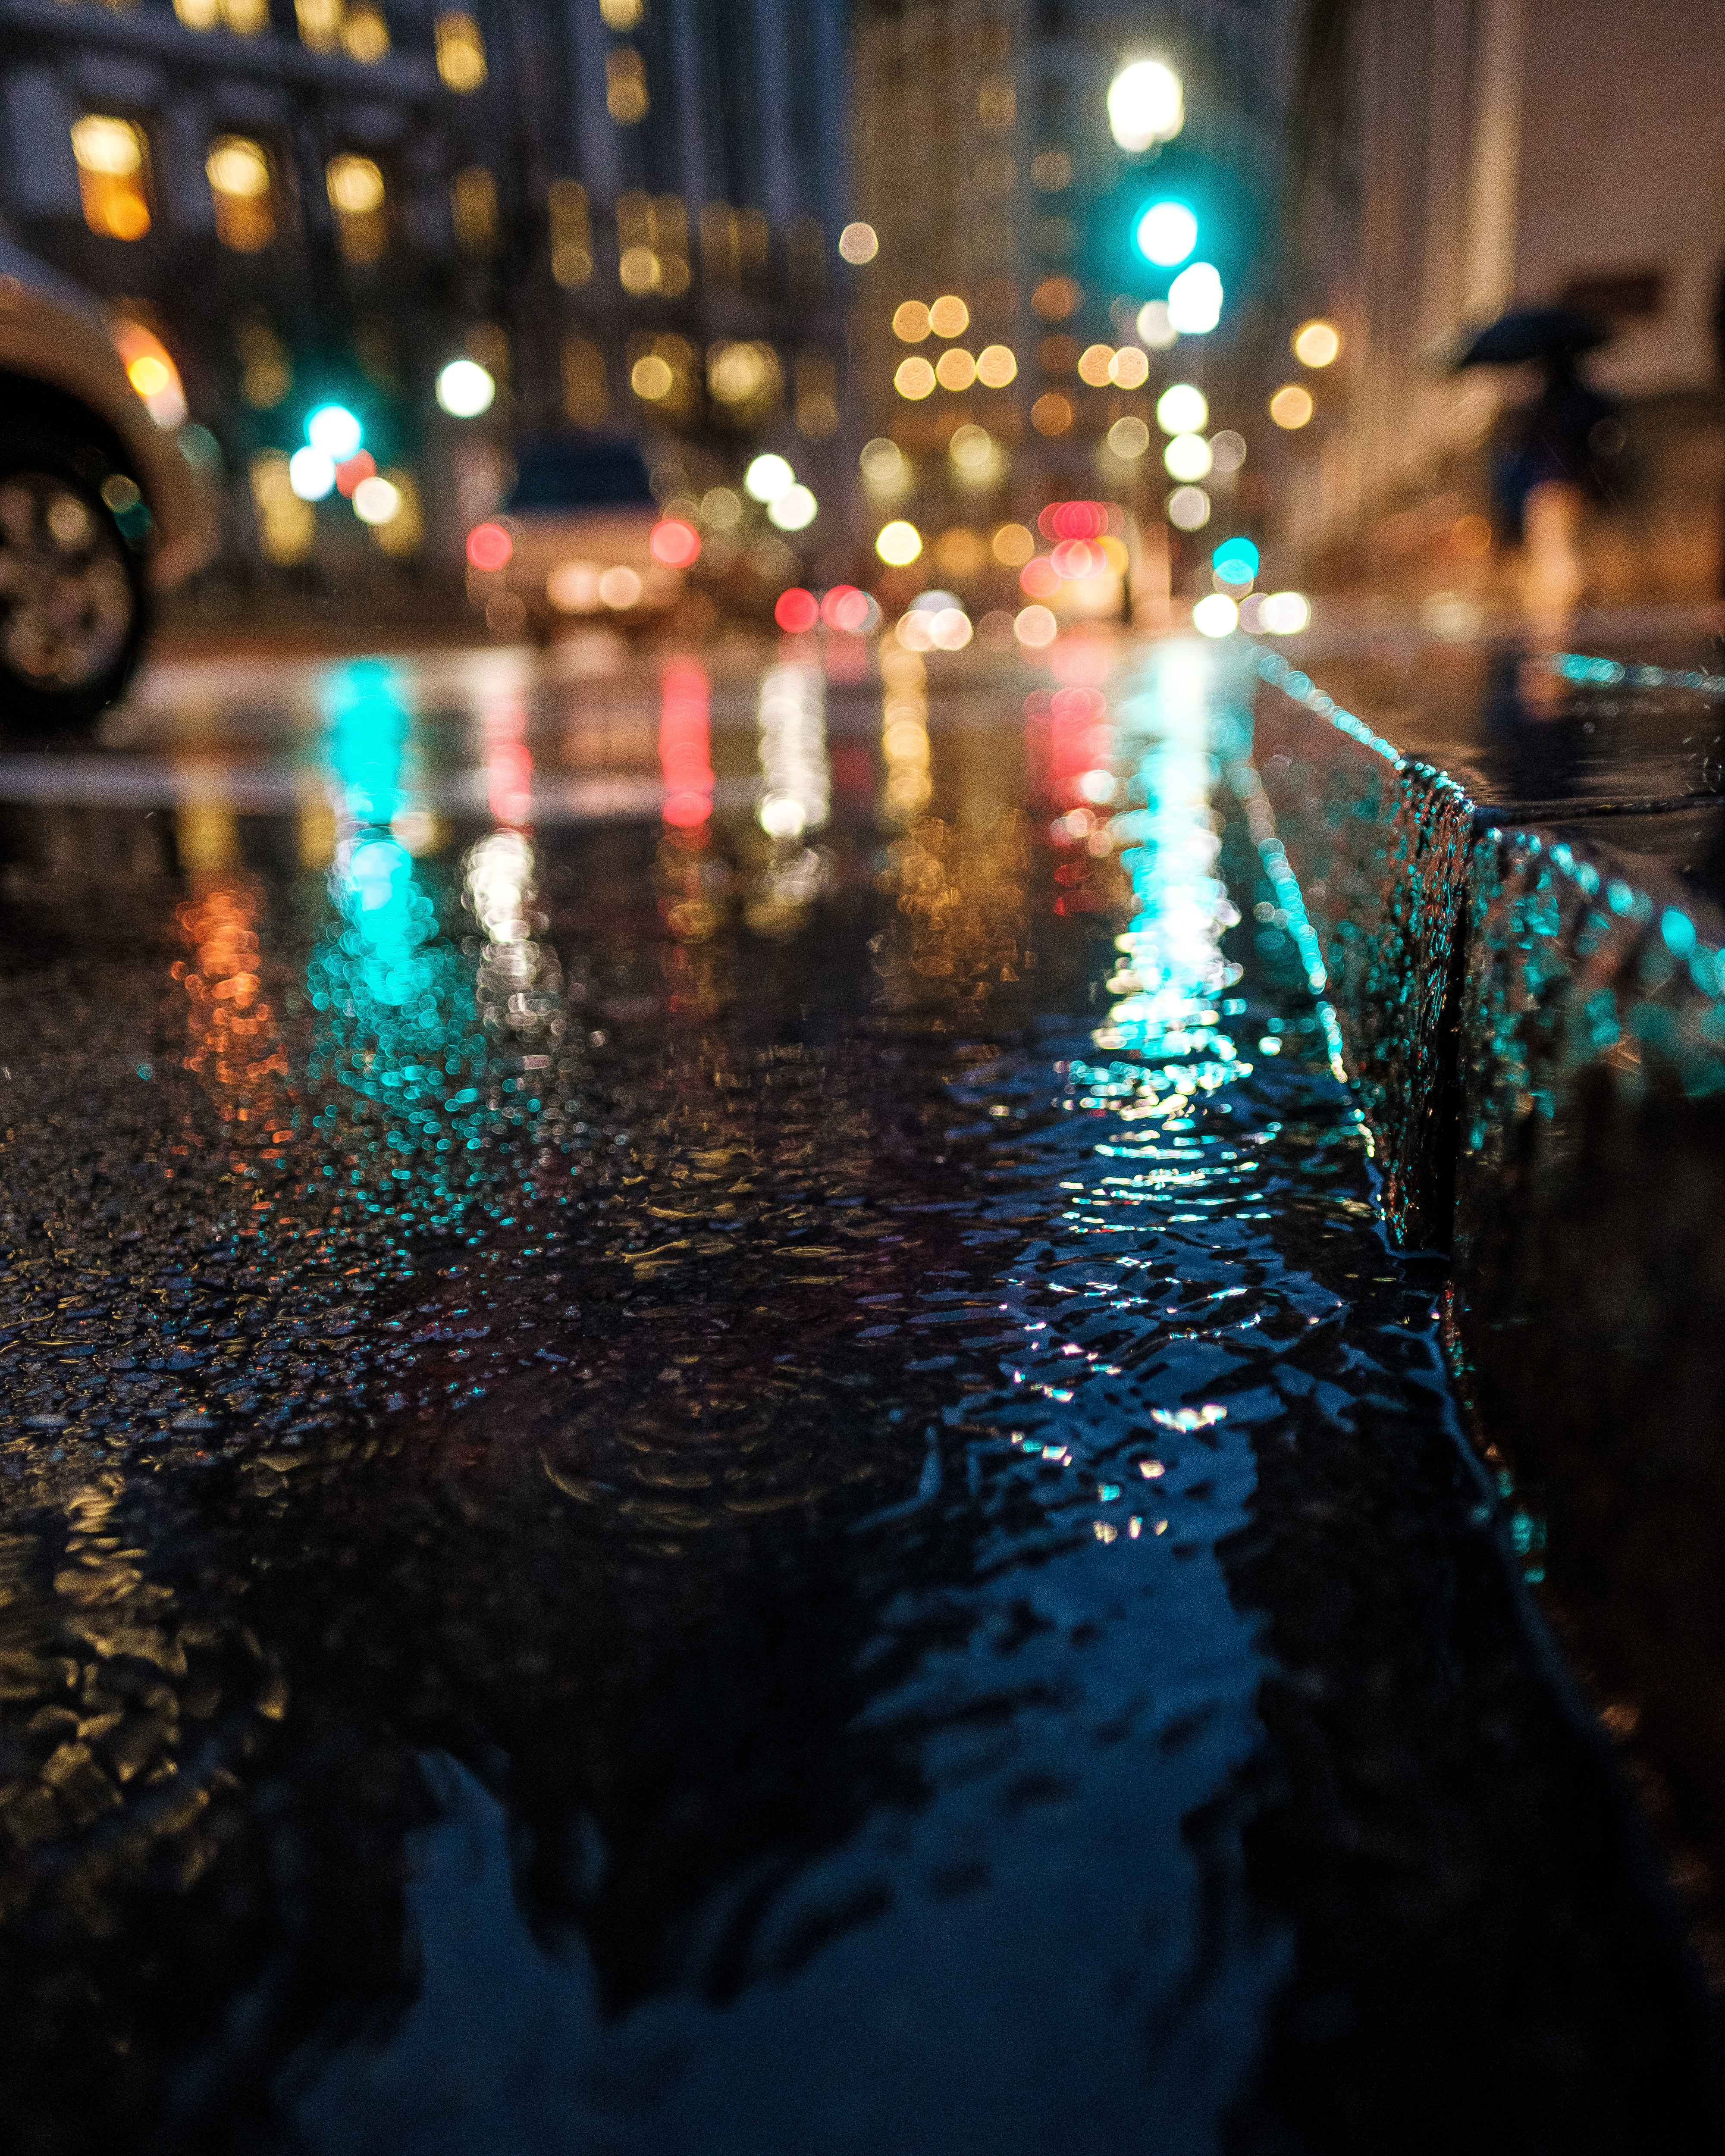 A night-time image capturing the rain on the ground on a downtown street.